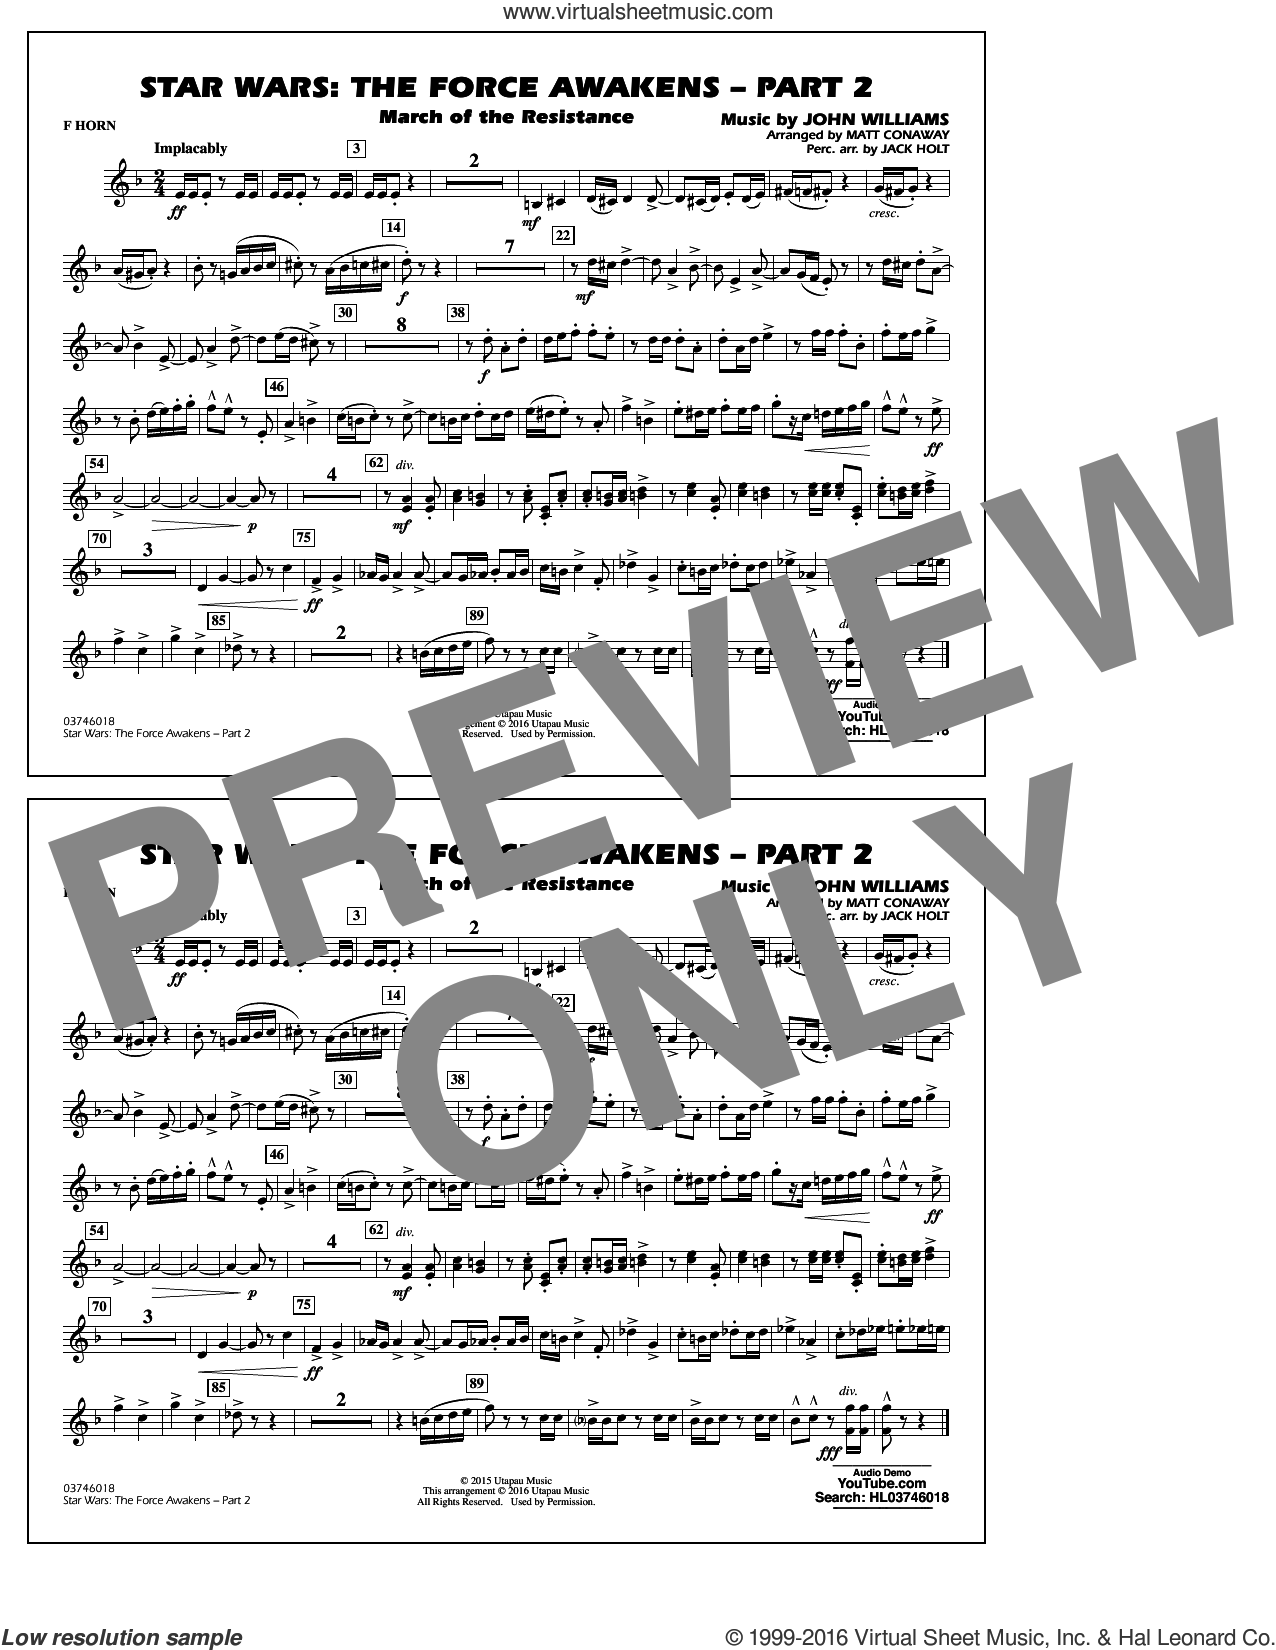 Star Wars: The Force Awakens, part 2 sheet music for marching band (f horn) by John Williams